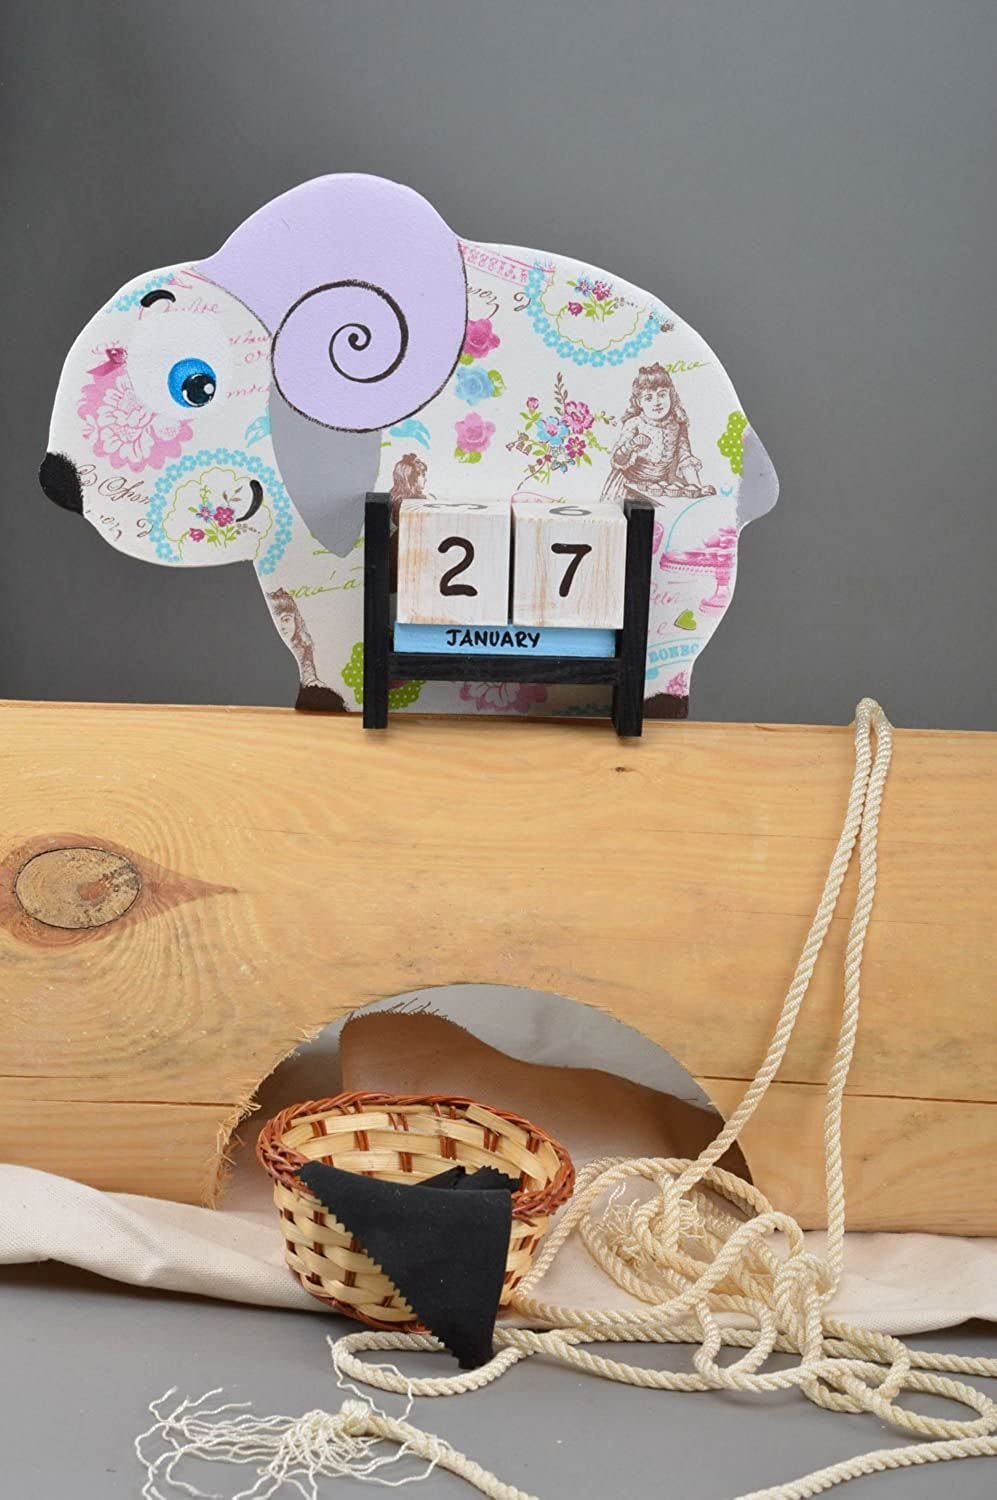 Handmade Decorative Calendar Wooden Table Calendar Cute Souvenir for Kids